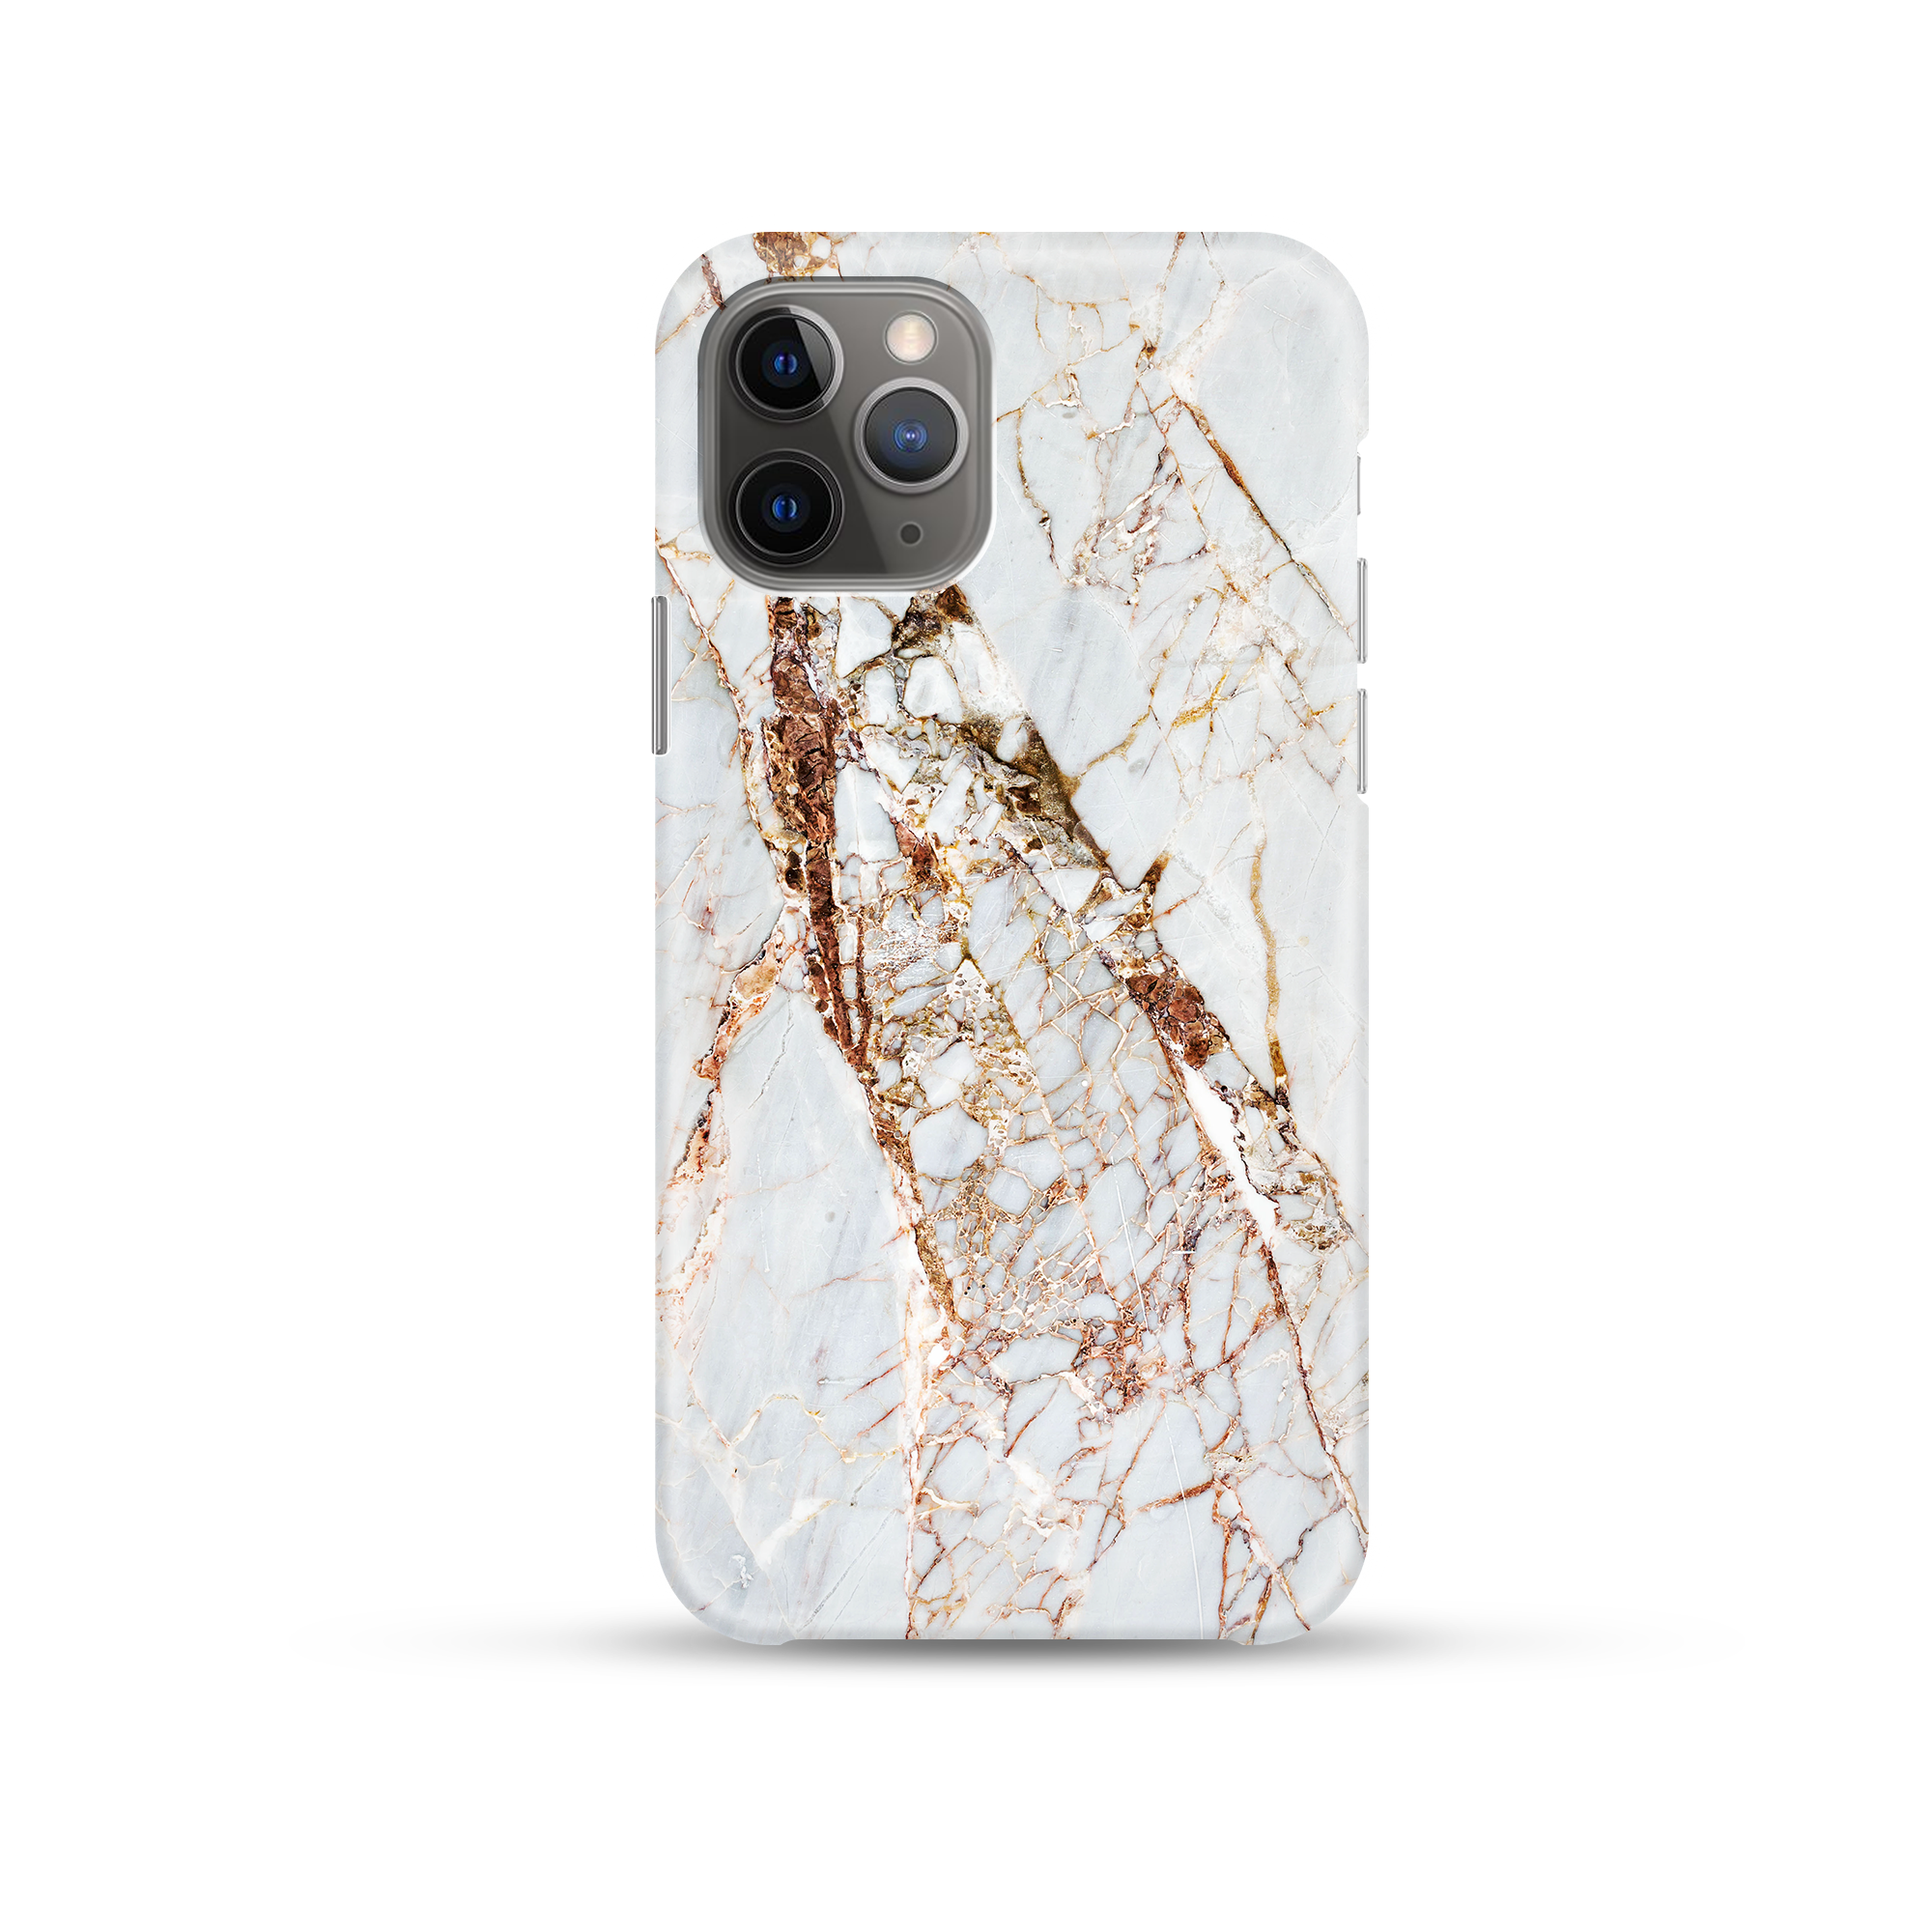 Biodegradable phone case Marble 6 Phone case